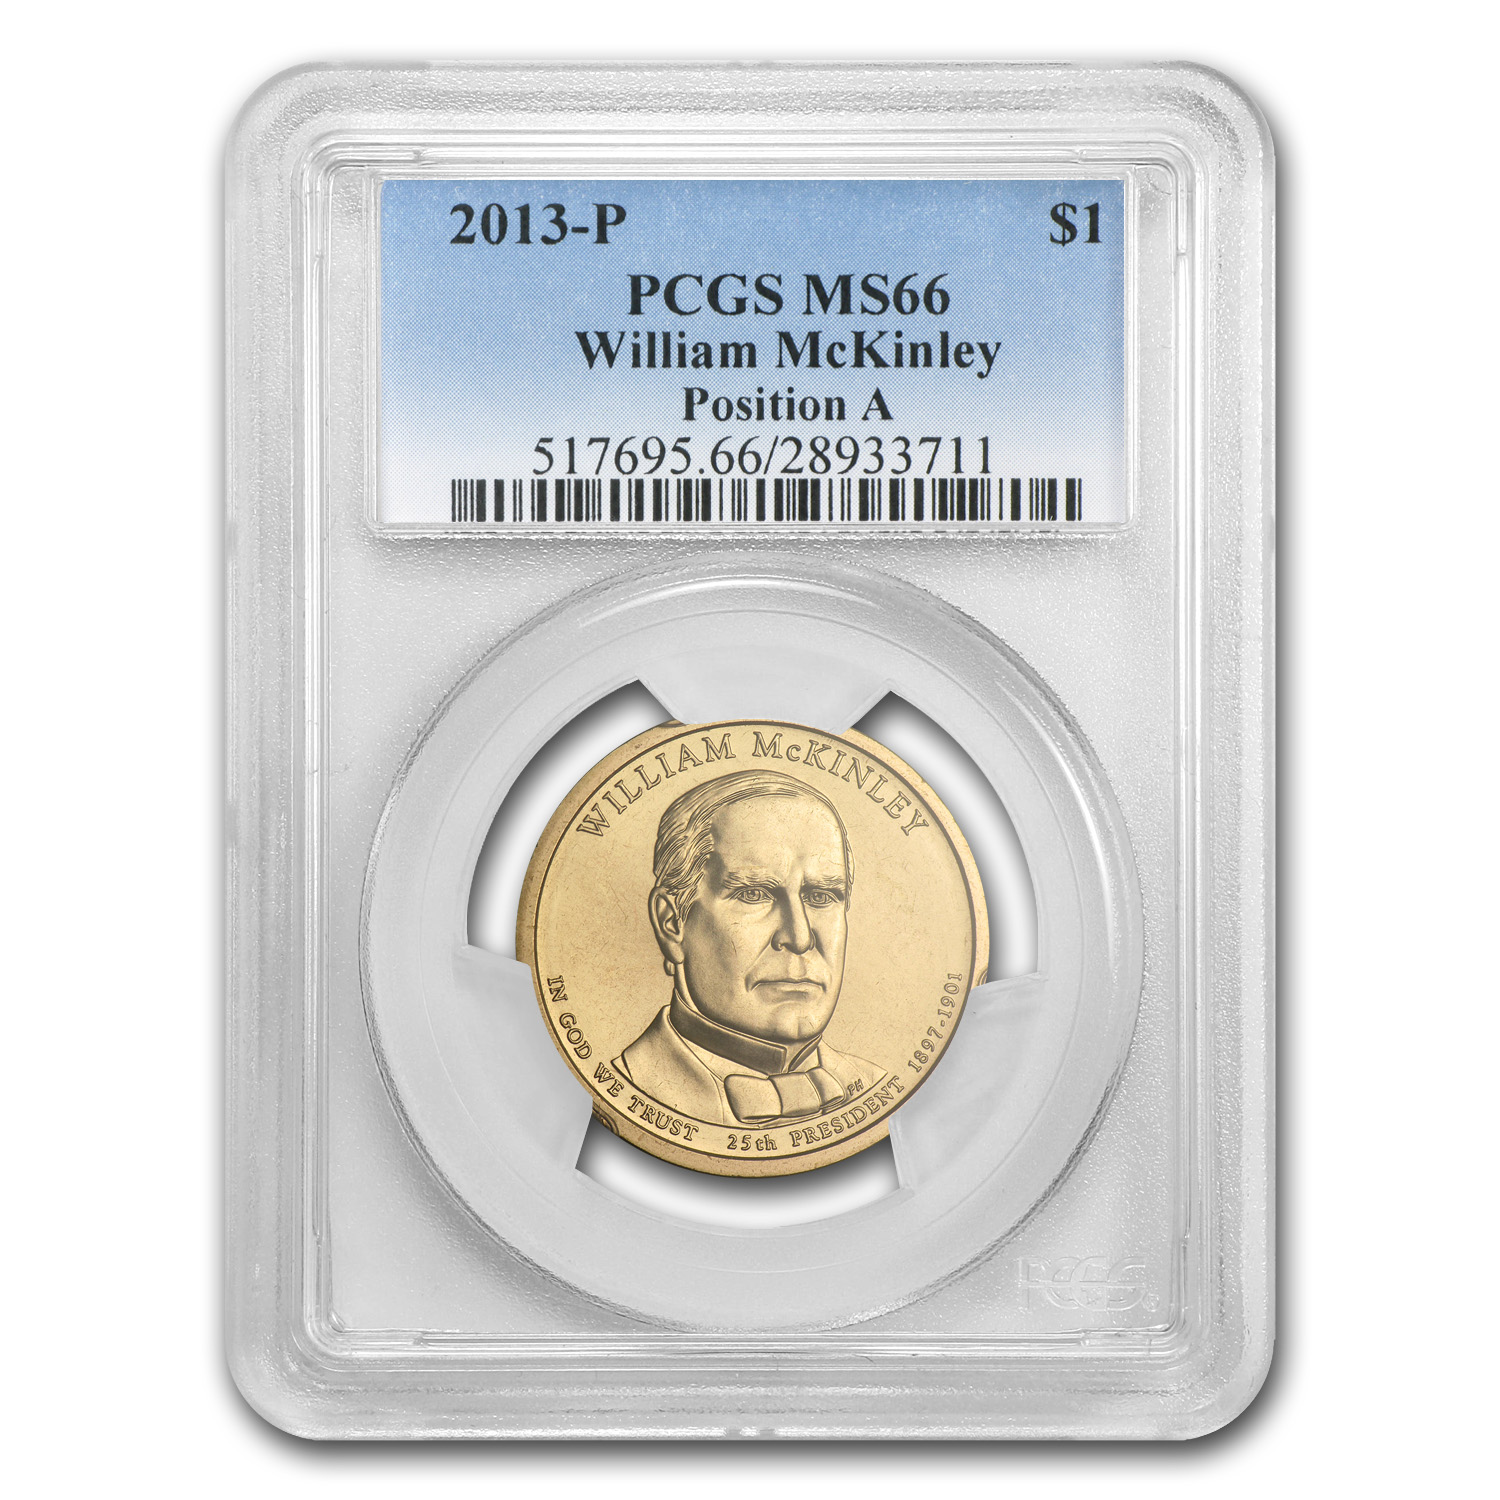 2013-P William McKinley Position A Presidential Dollar MS-66 PCGS